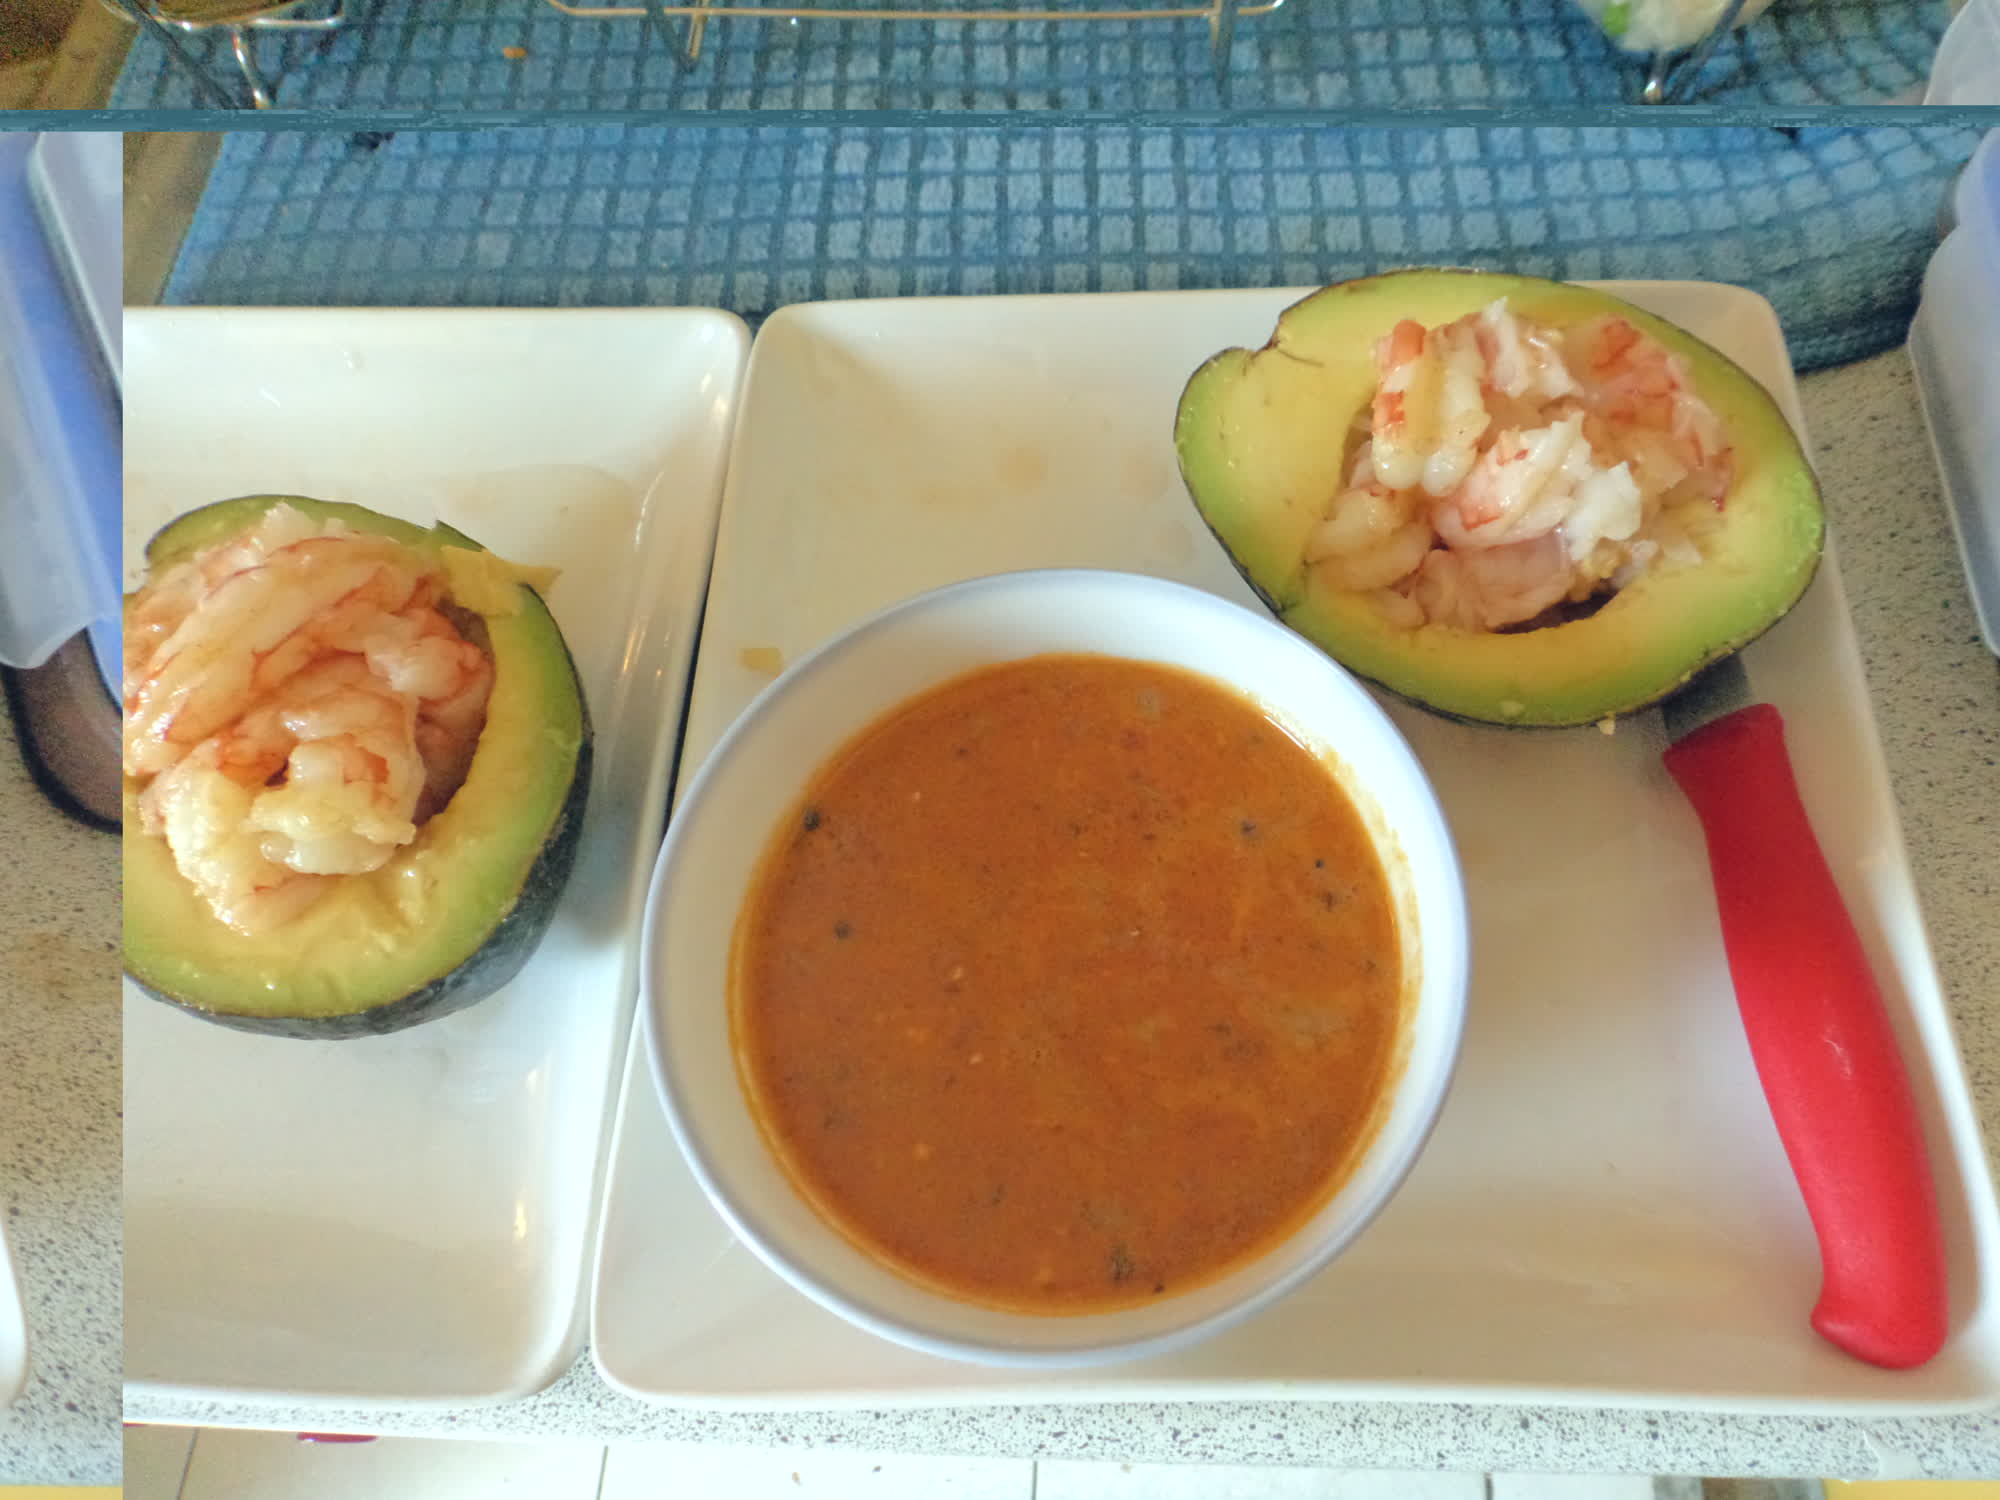 Tomato soup with shrimp-stuffed avocado.